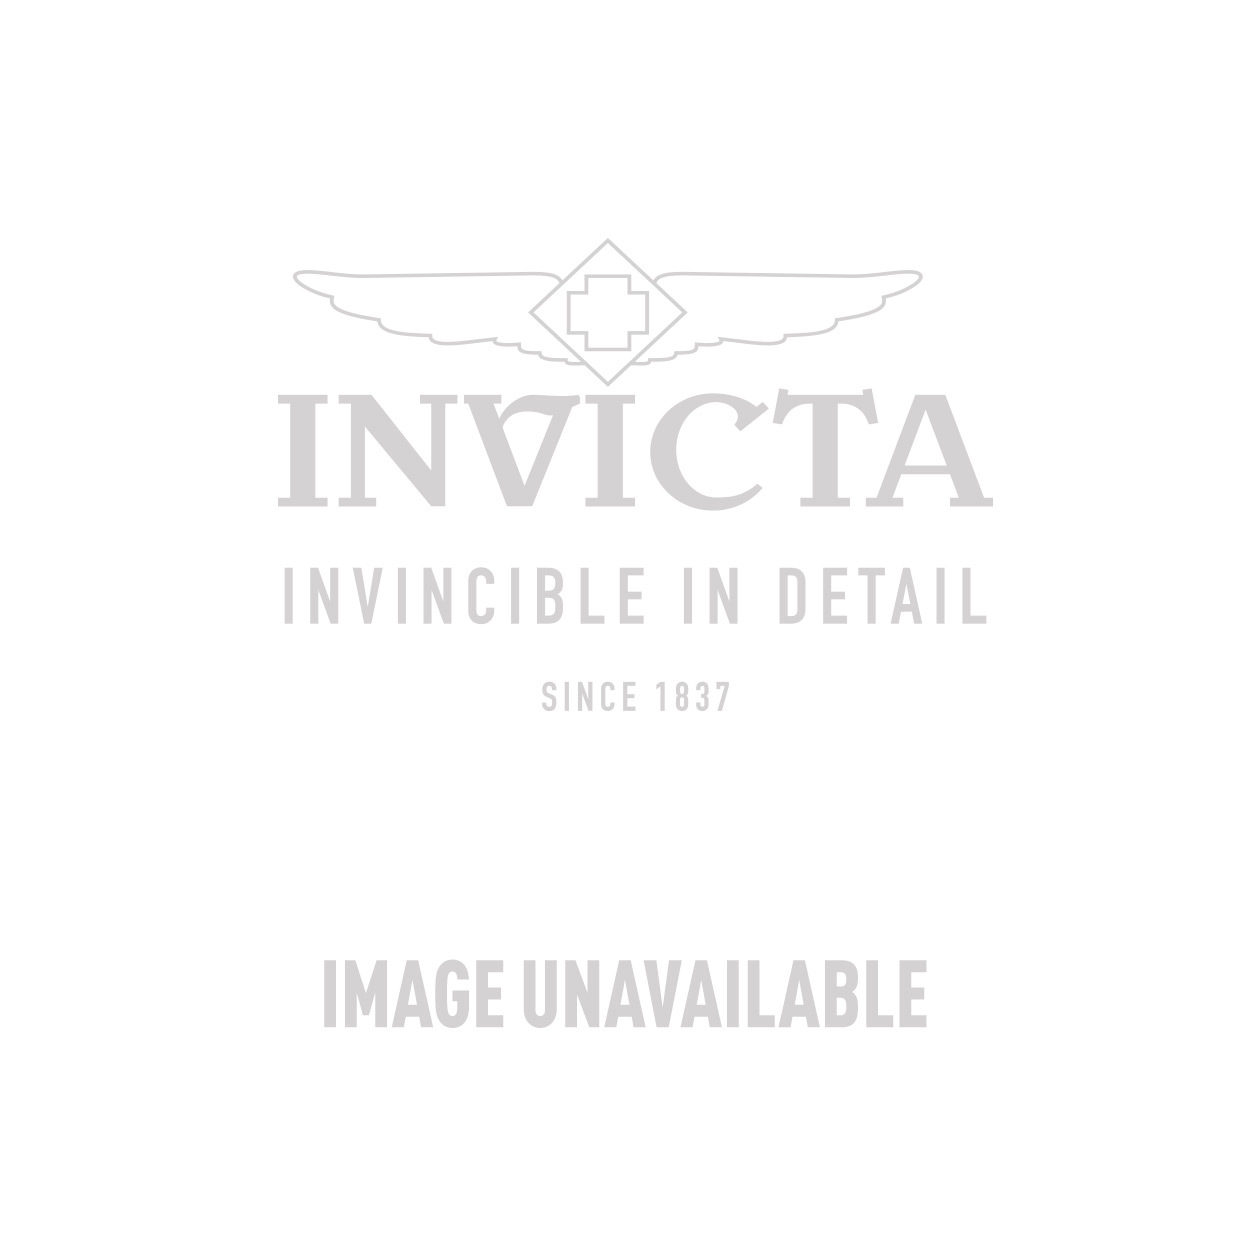 Invicta Pro Diver Quartz Watch - Stainless Steel case Stainless Steel band - Model 90193